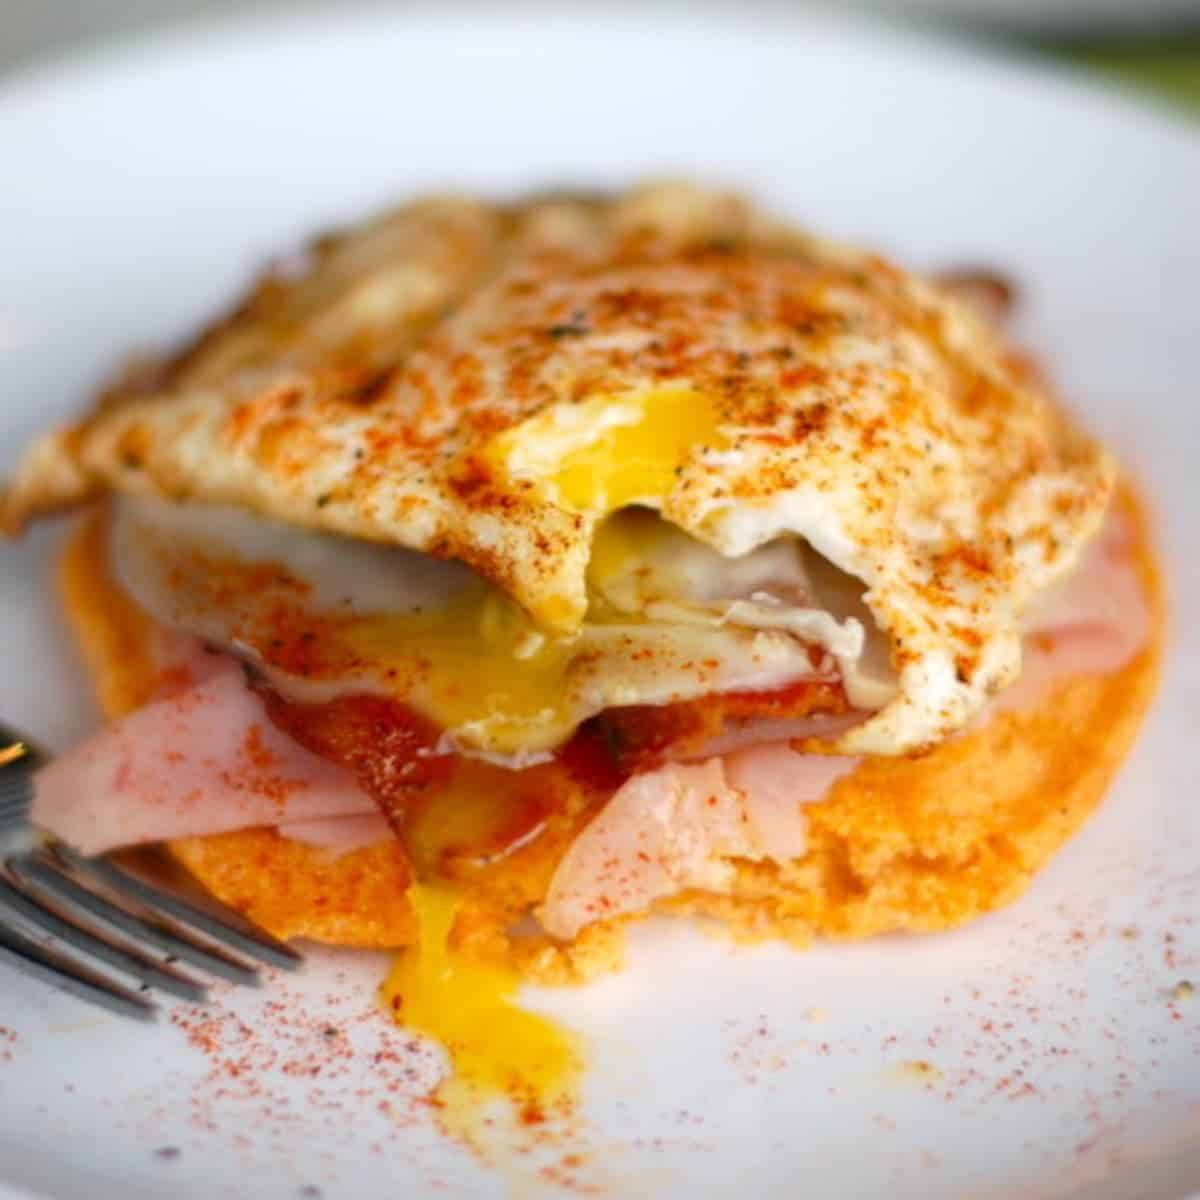 This spicy corn cake breakfast stack is a savory Mexican spin on pancakes - the little corn cakes topped with bacon and fried eggs is to die for! | pinchofyum.com